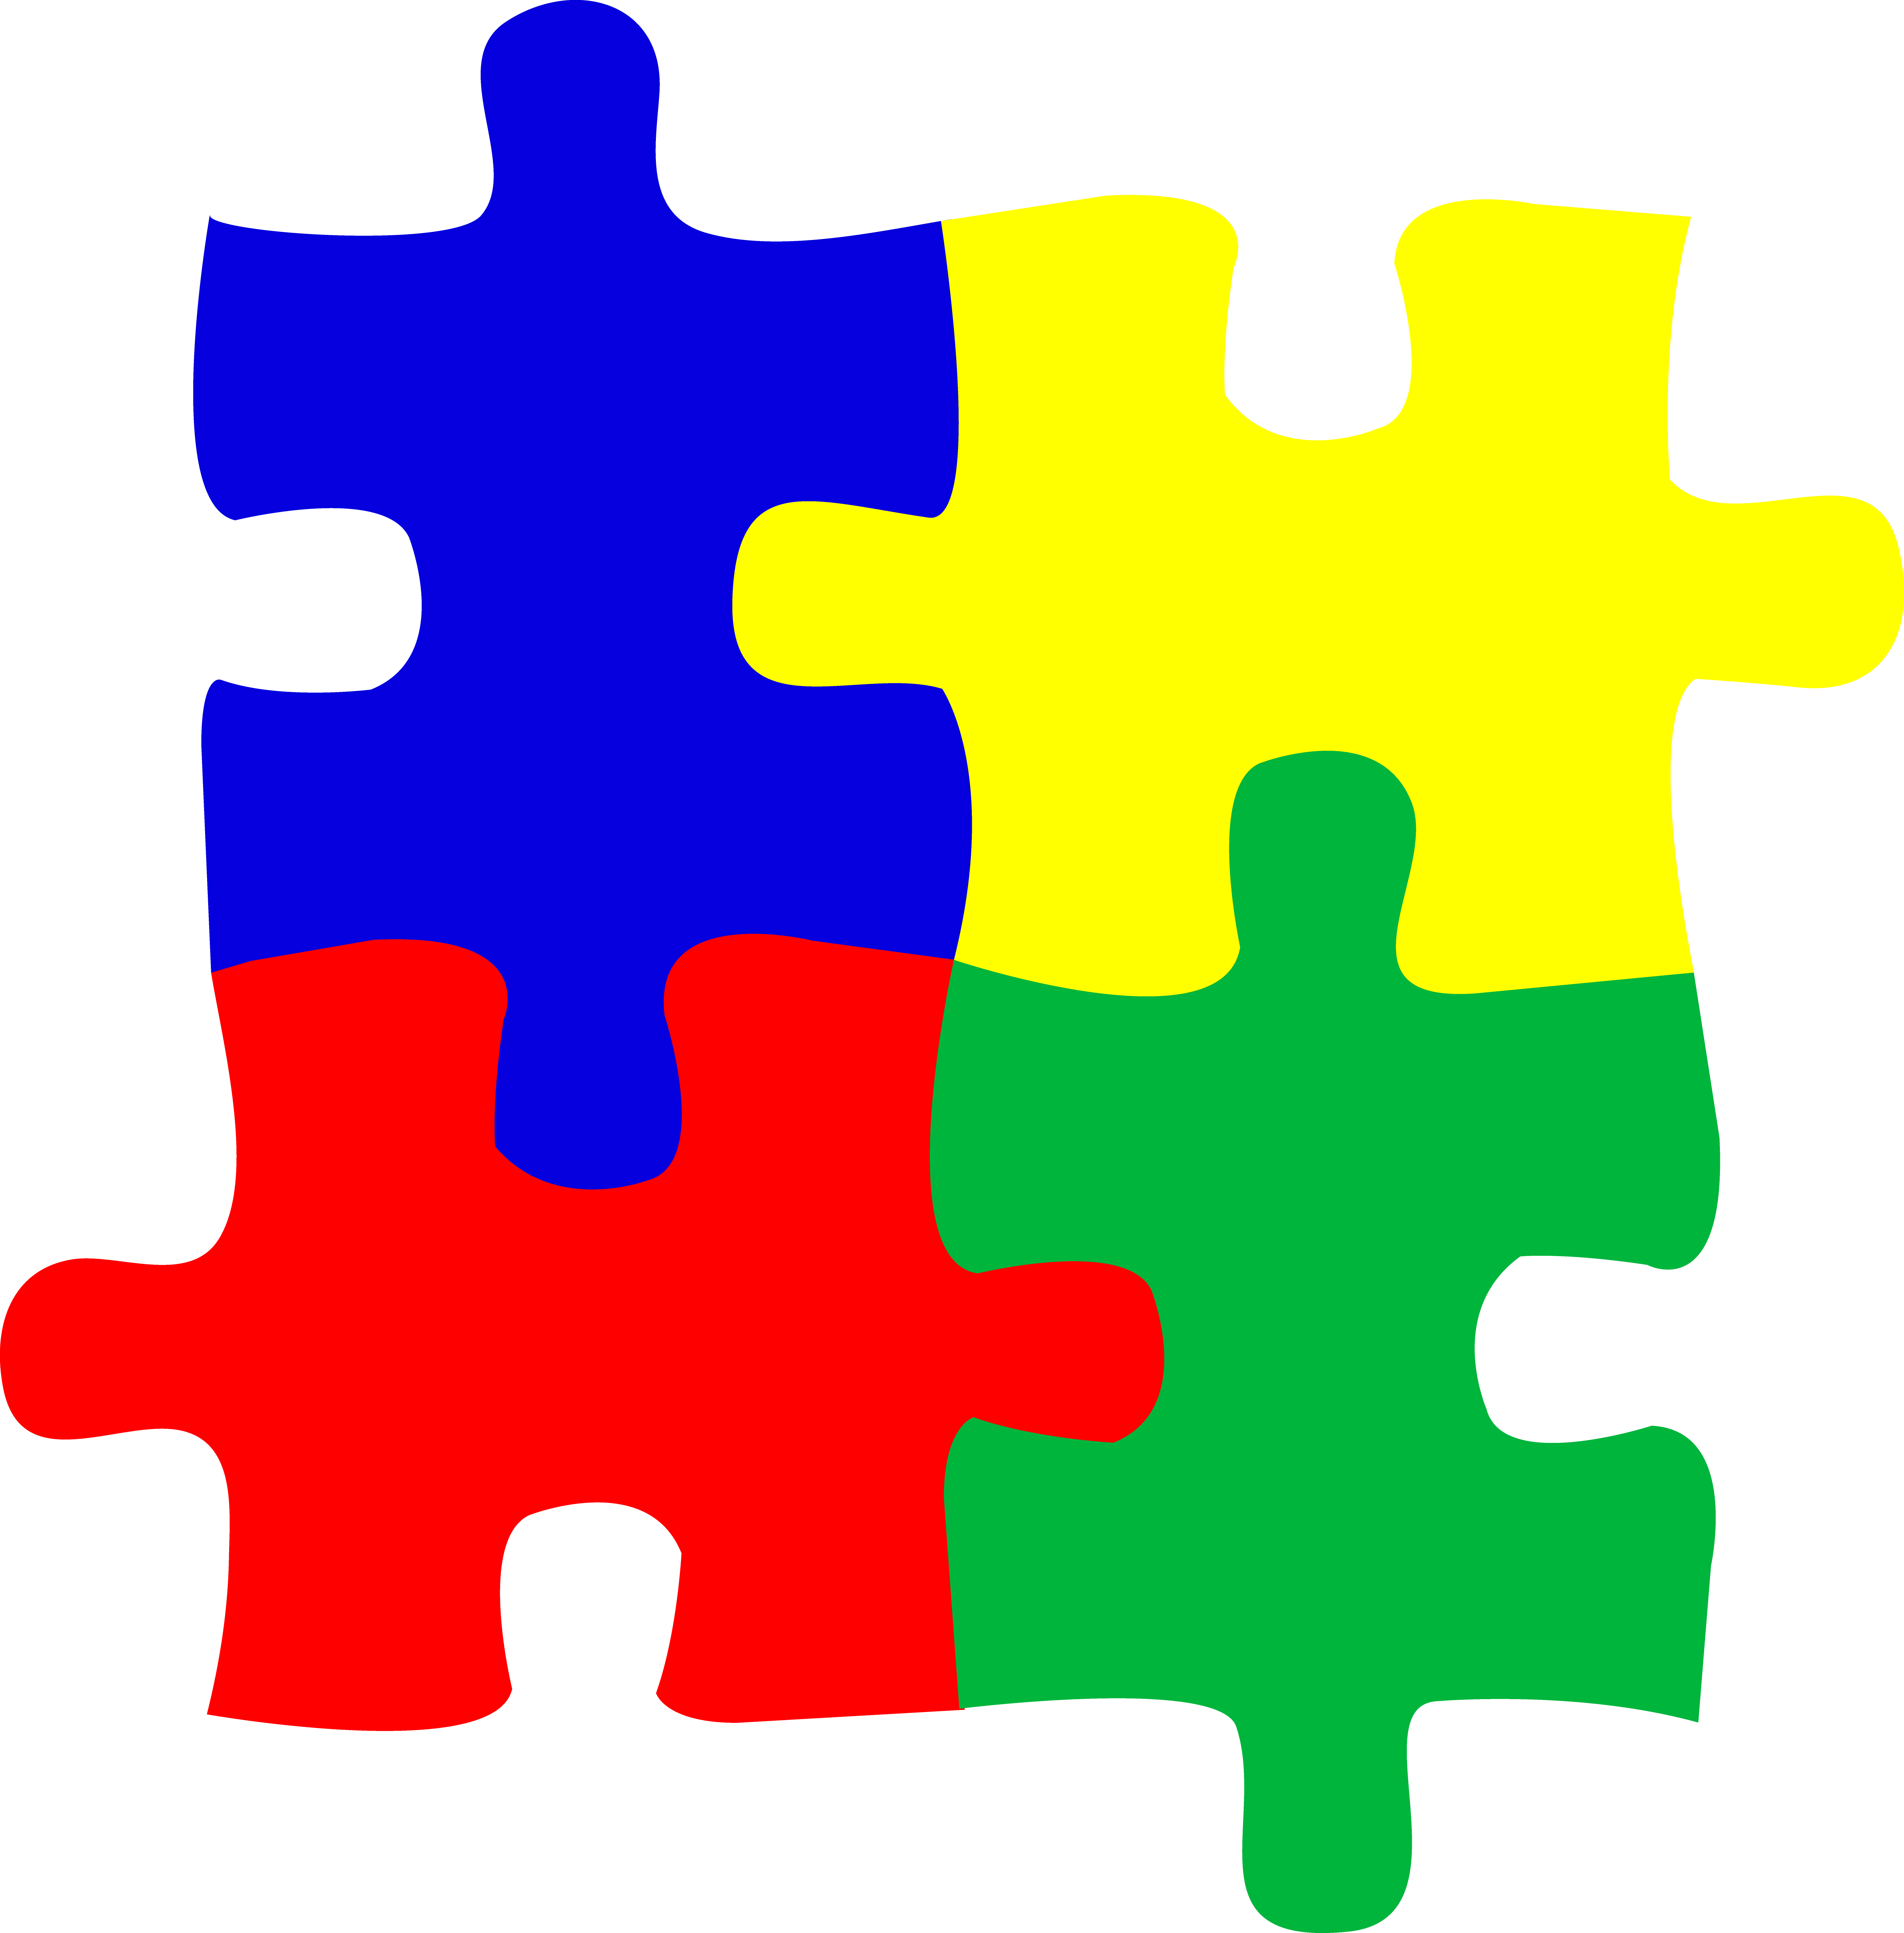 Motivation clipart dependency. Puzzle images panda free